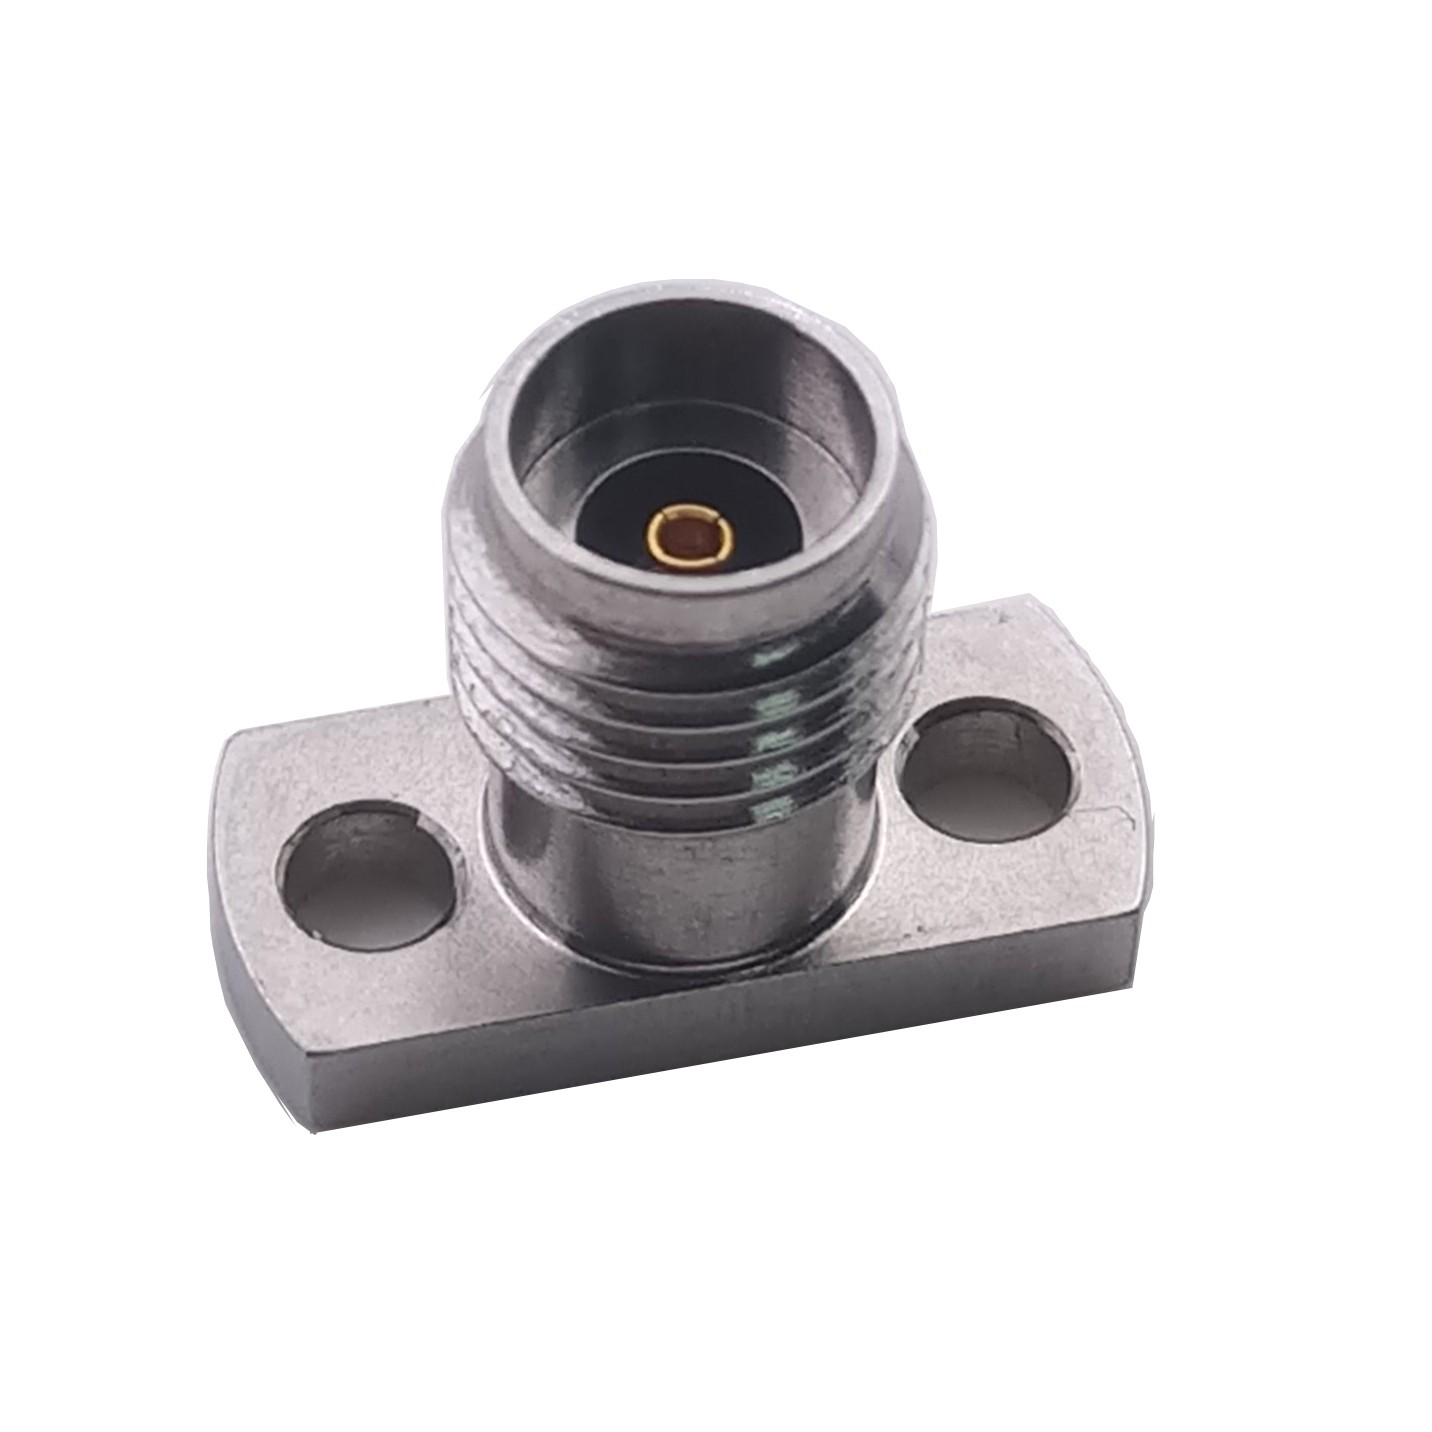 40GHz 2.92mm female connector with flange 2 holes 50Ohms PCB Mounting